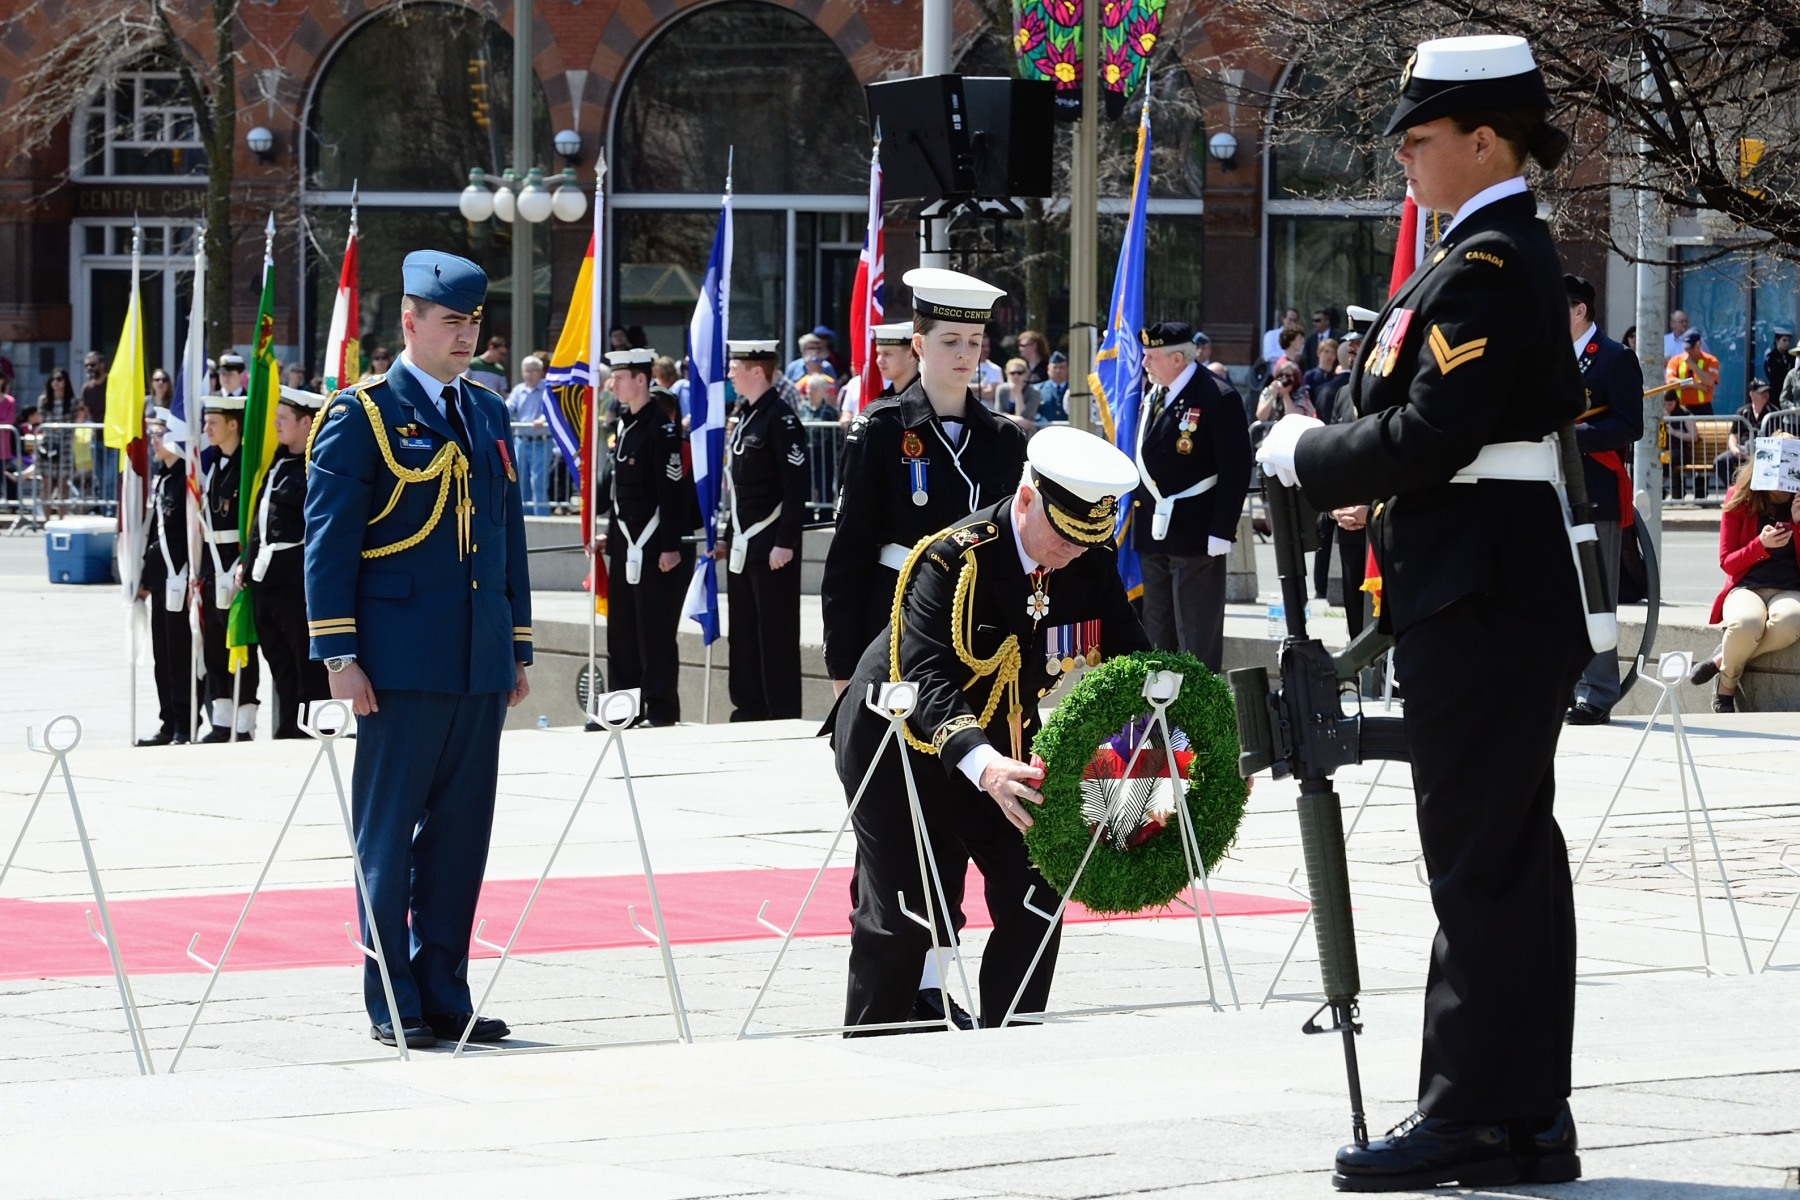 On this occasion, the Governor General laid lay a wreath.